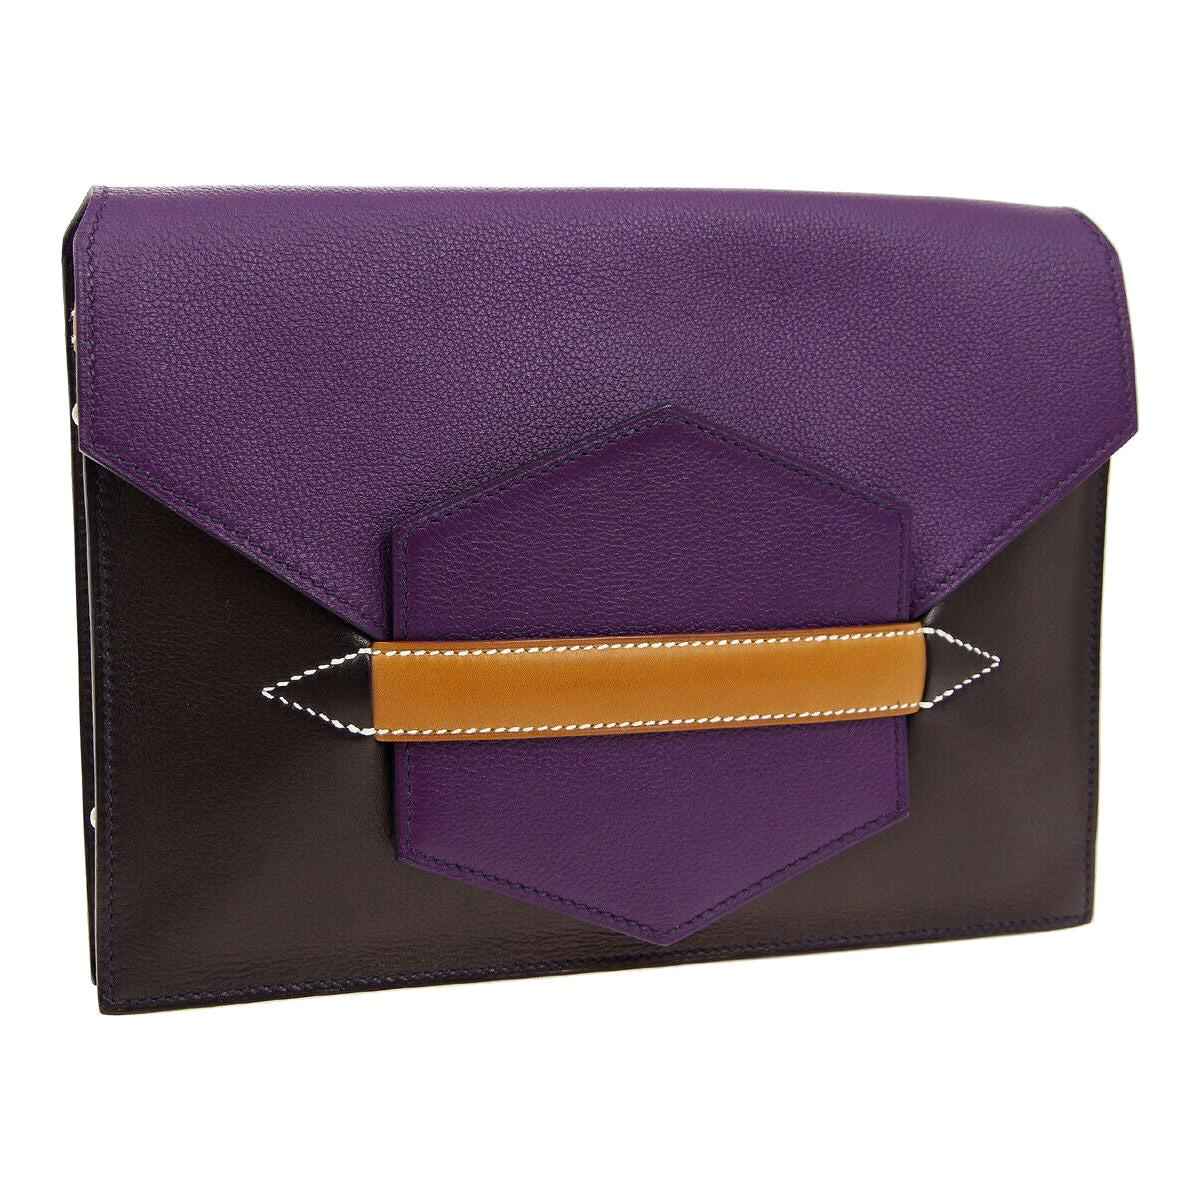 Hermes Purple Cognac Leather  2 in 1 Evening Clutch Shoulder Bag in Box